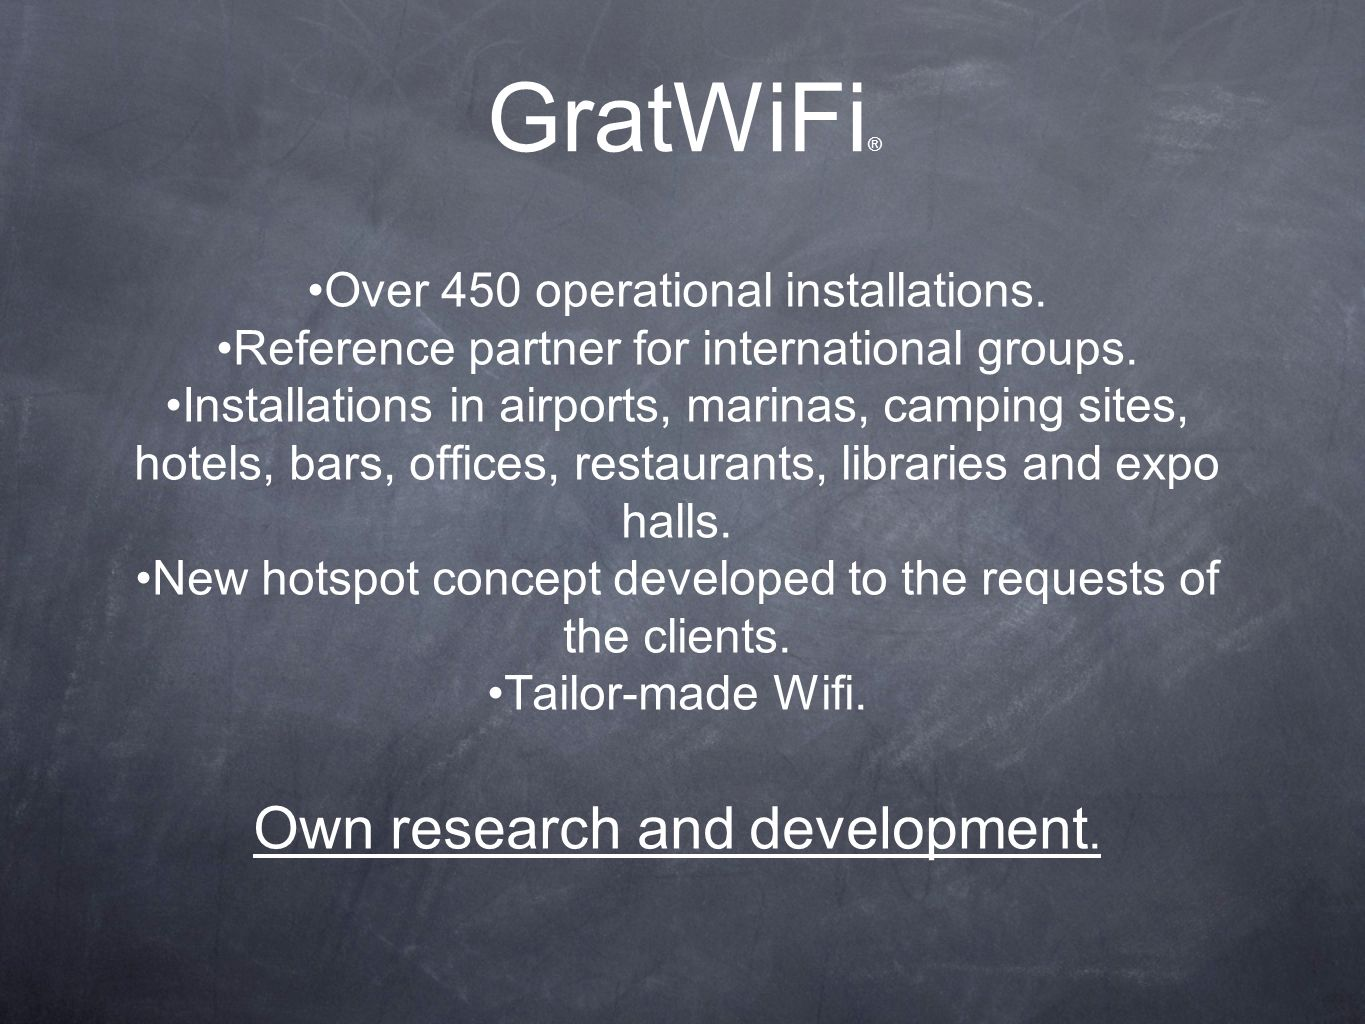 GratWiFi® Own research and development.